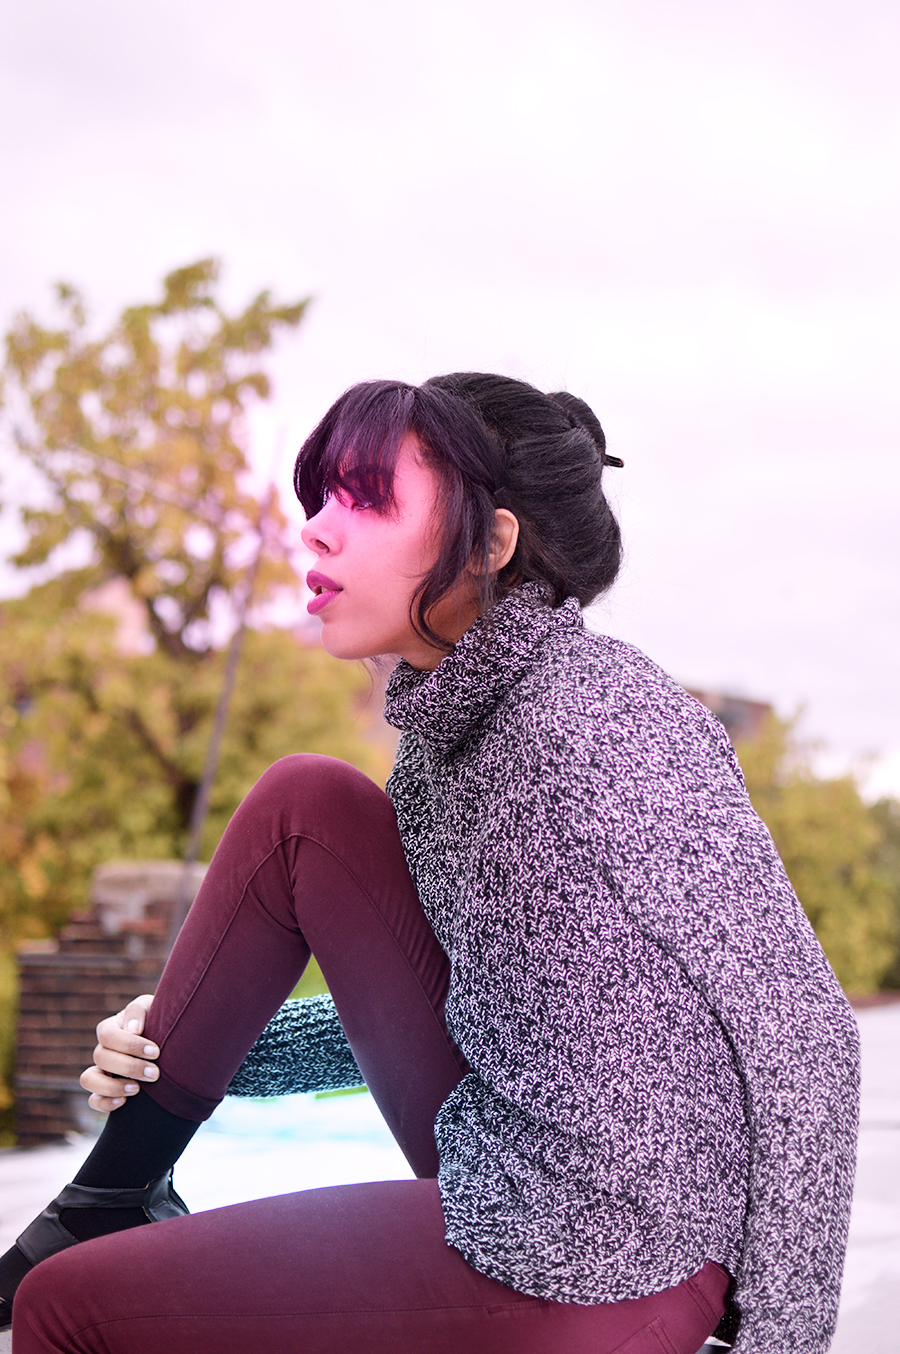 brooklyn fashion blogger anais alexandre on her rooftop enjoying sweater weather